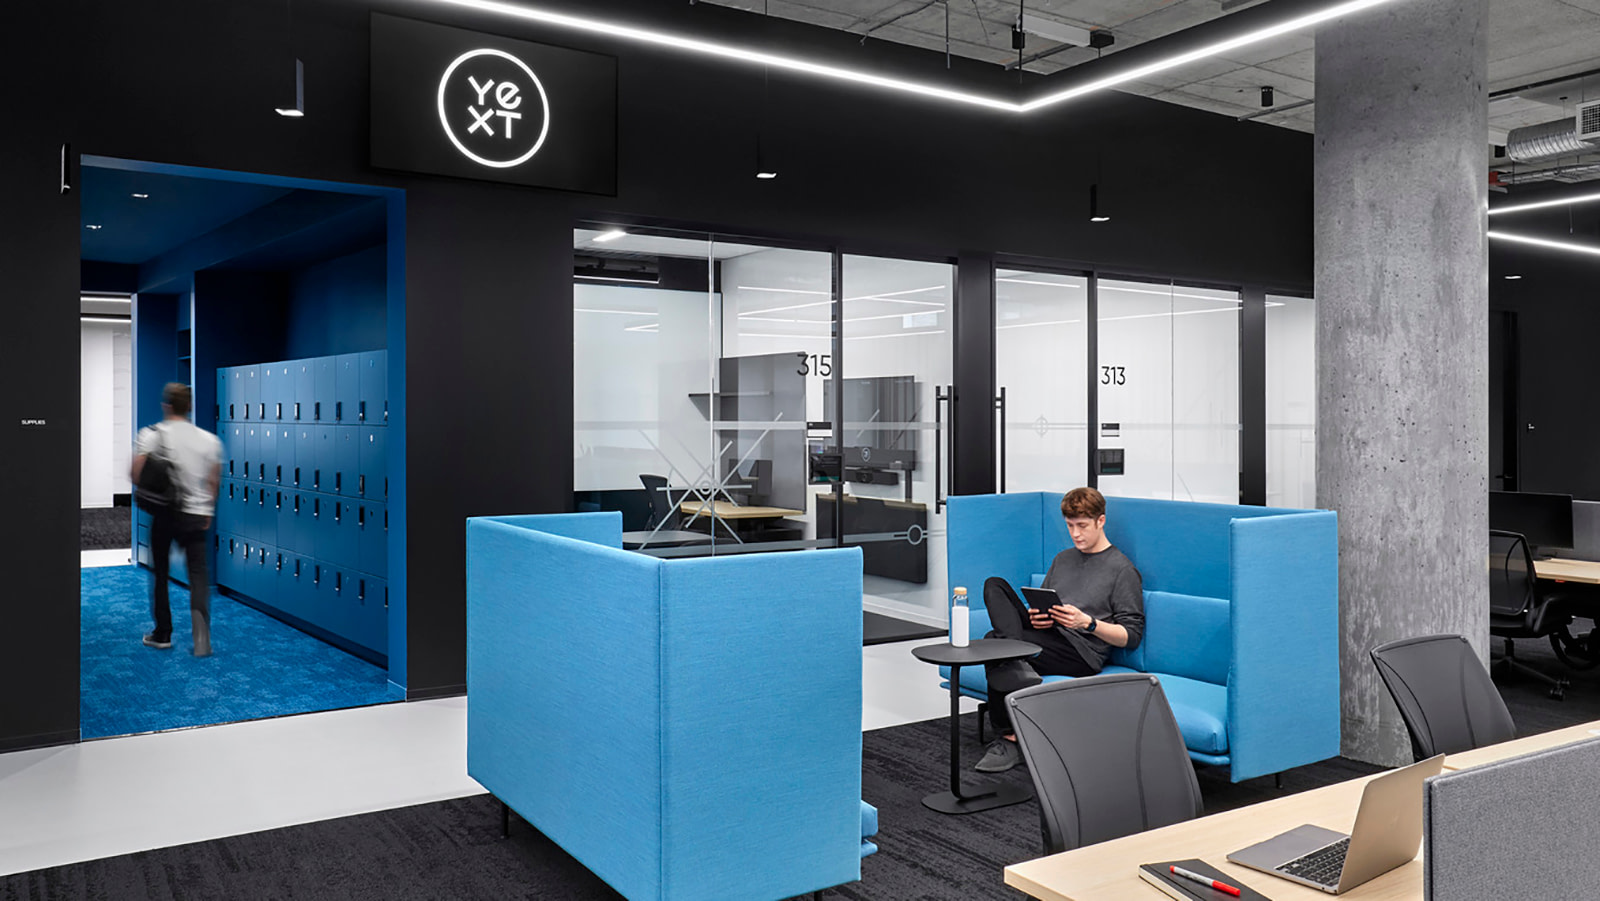 Close seating area at Yext NYC